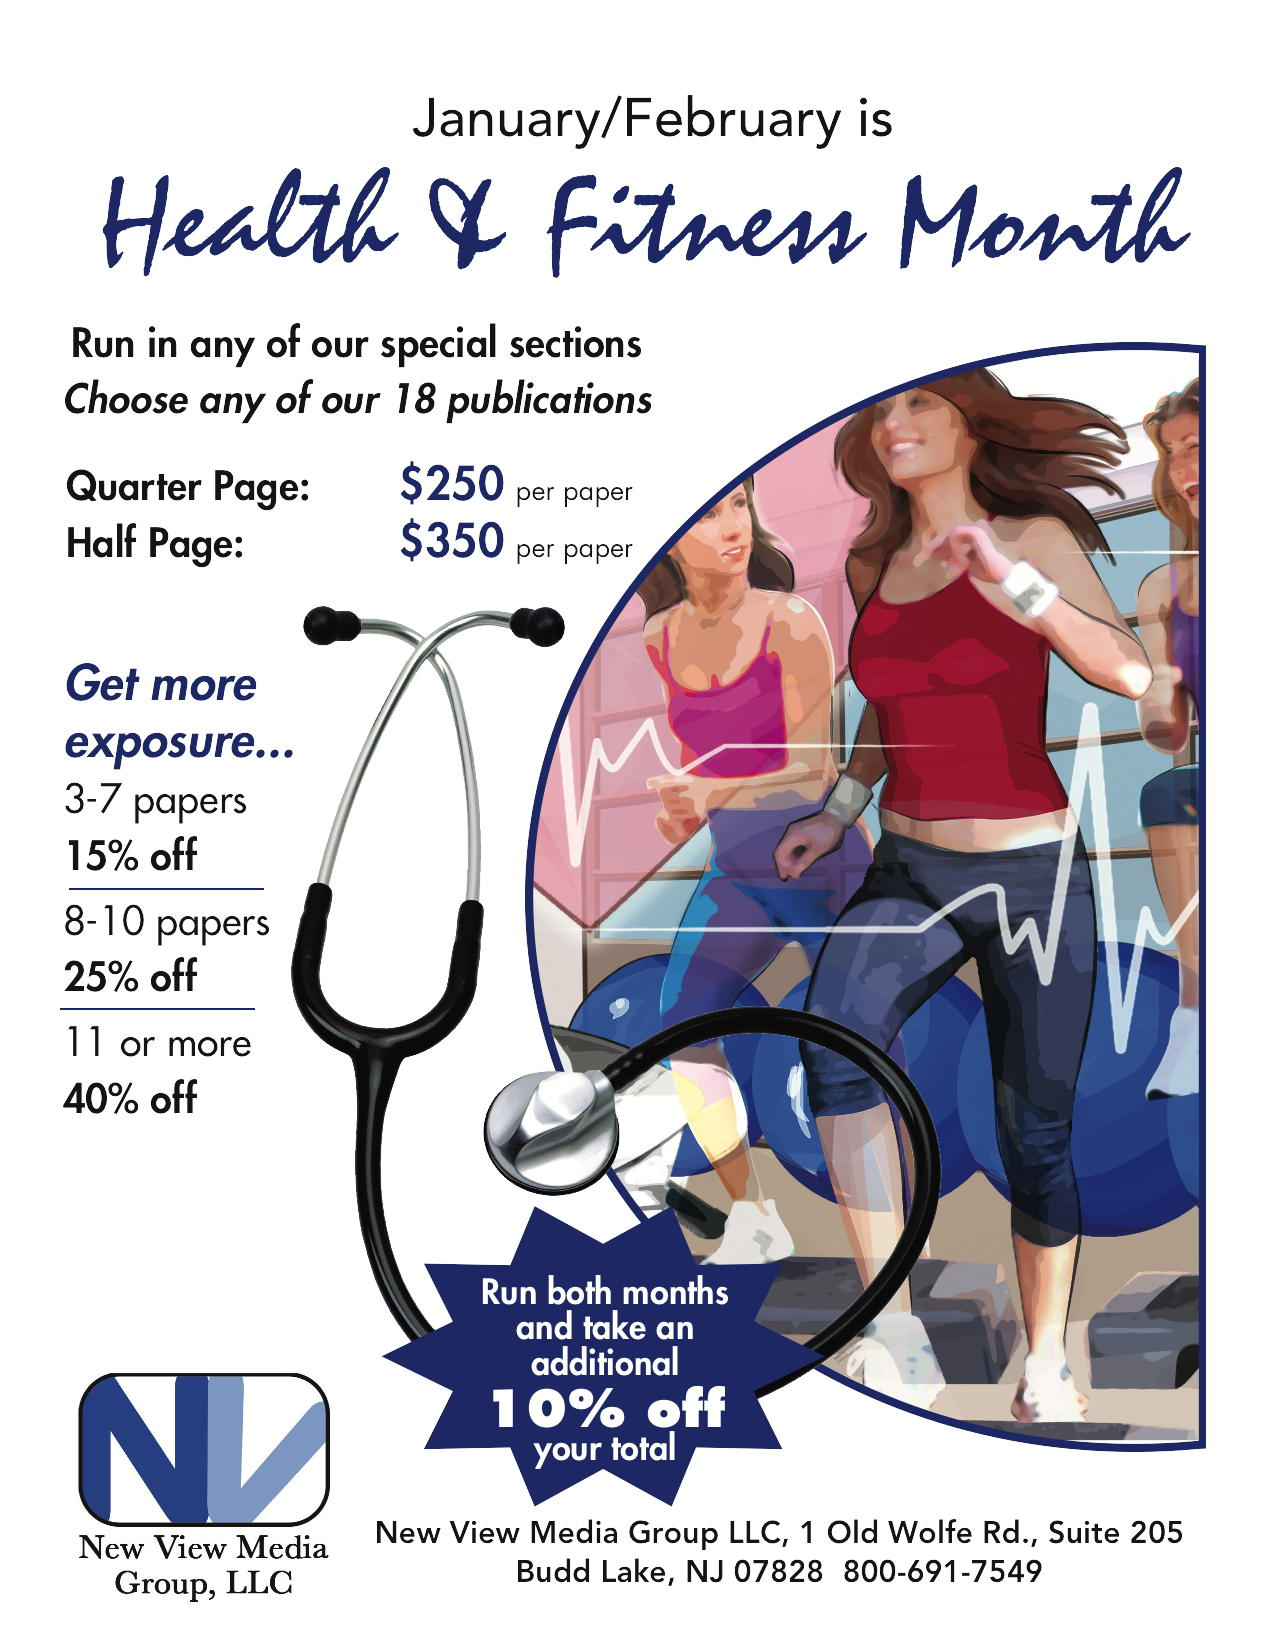 Health & Fitness Month.indd